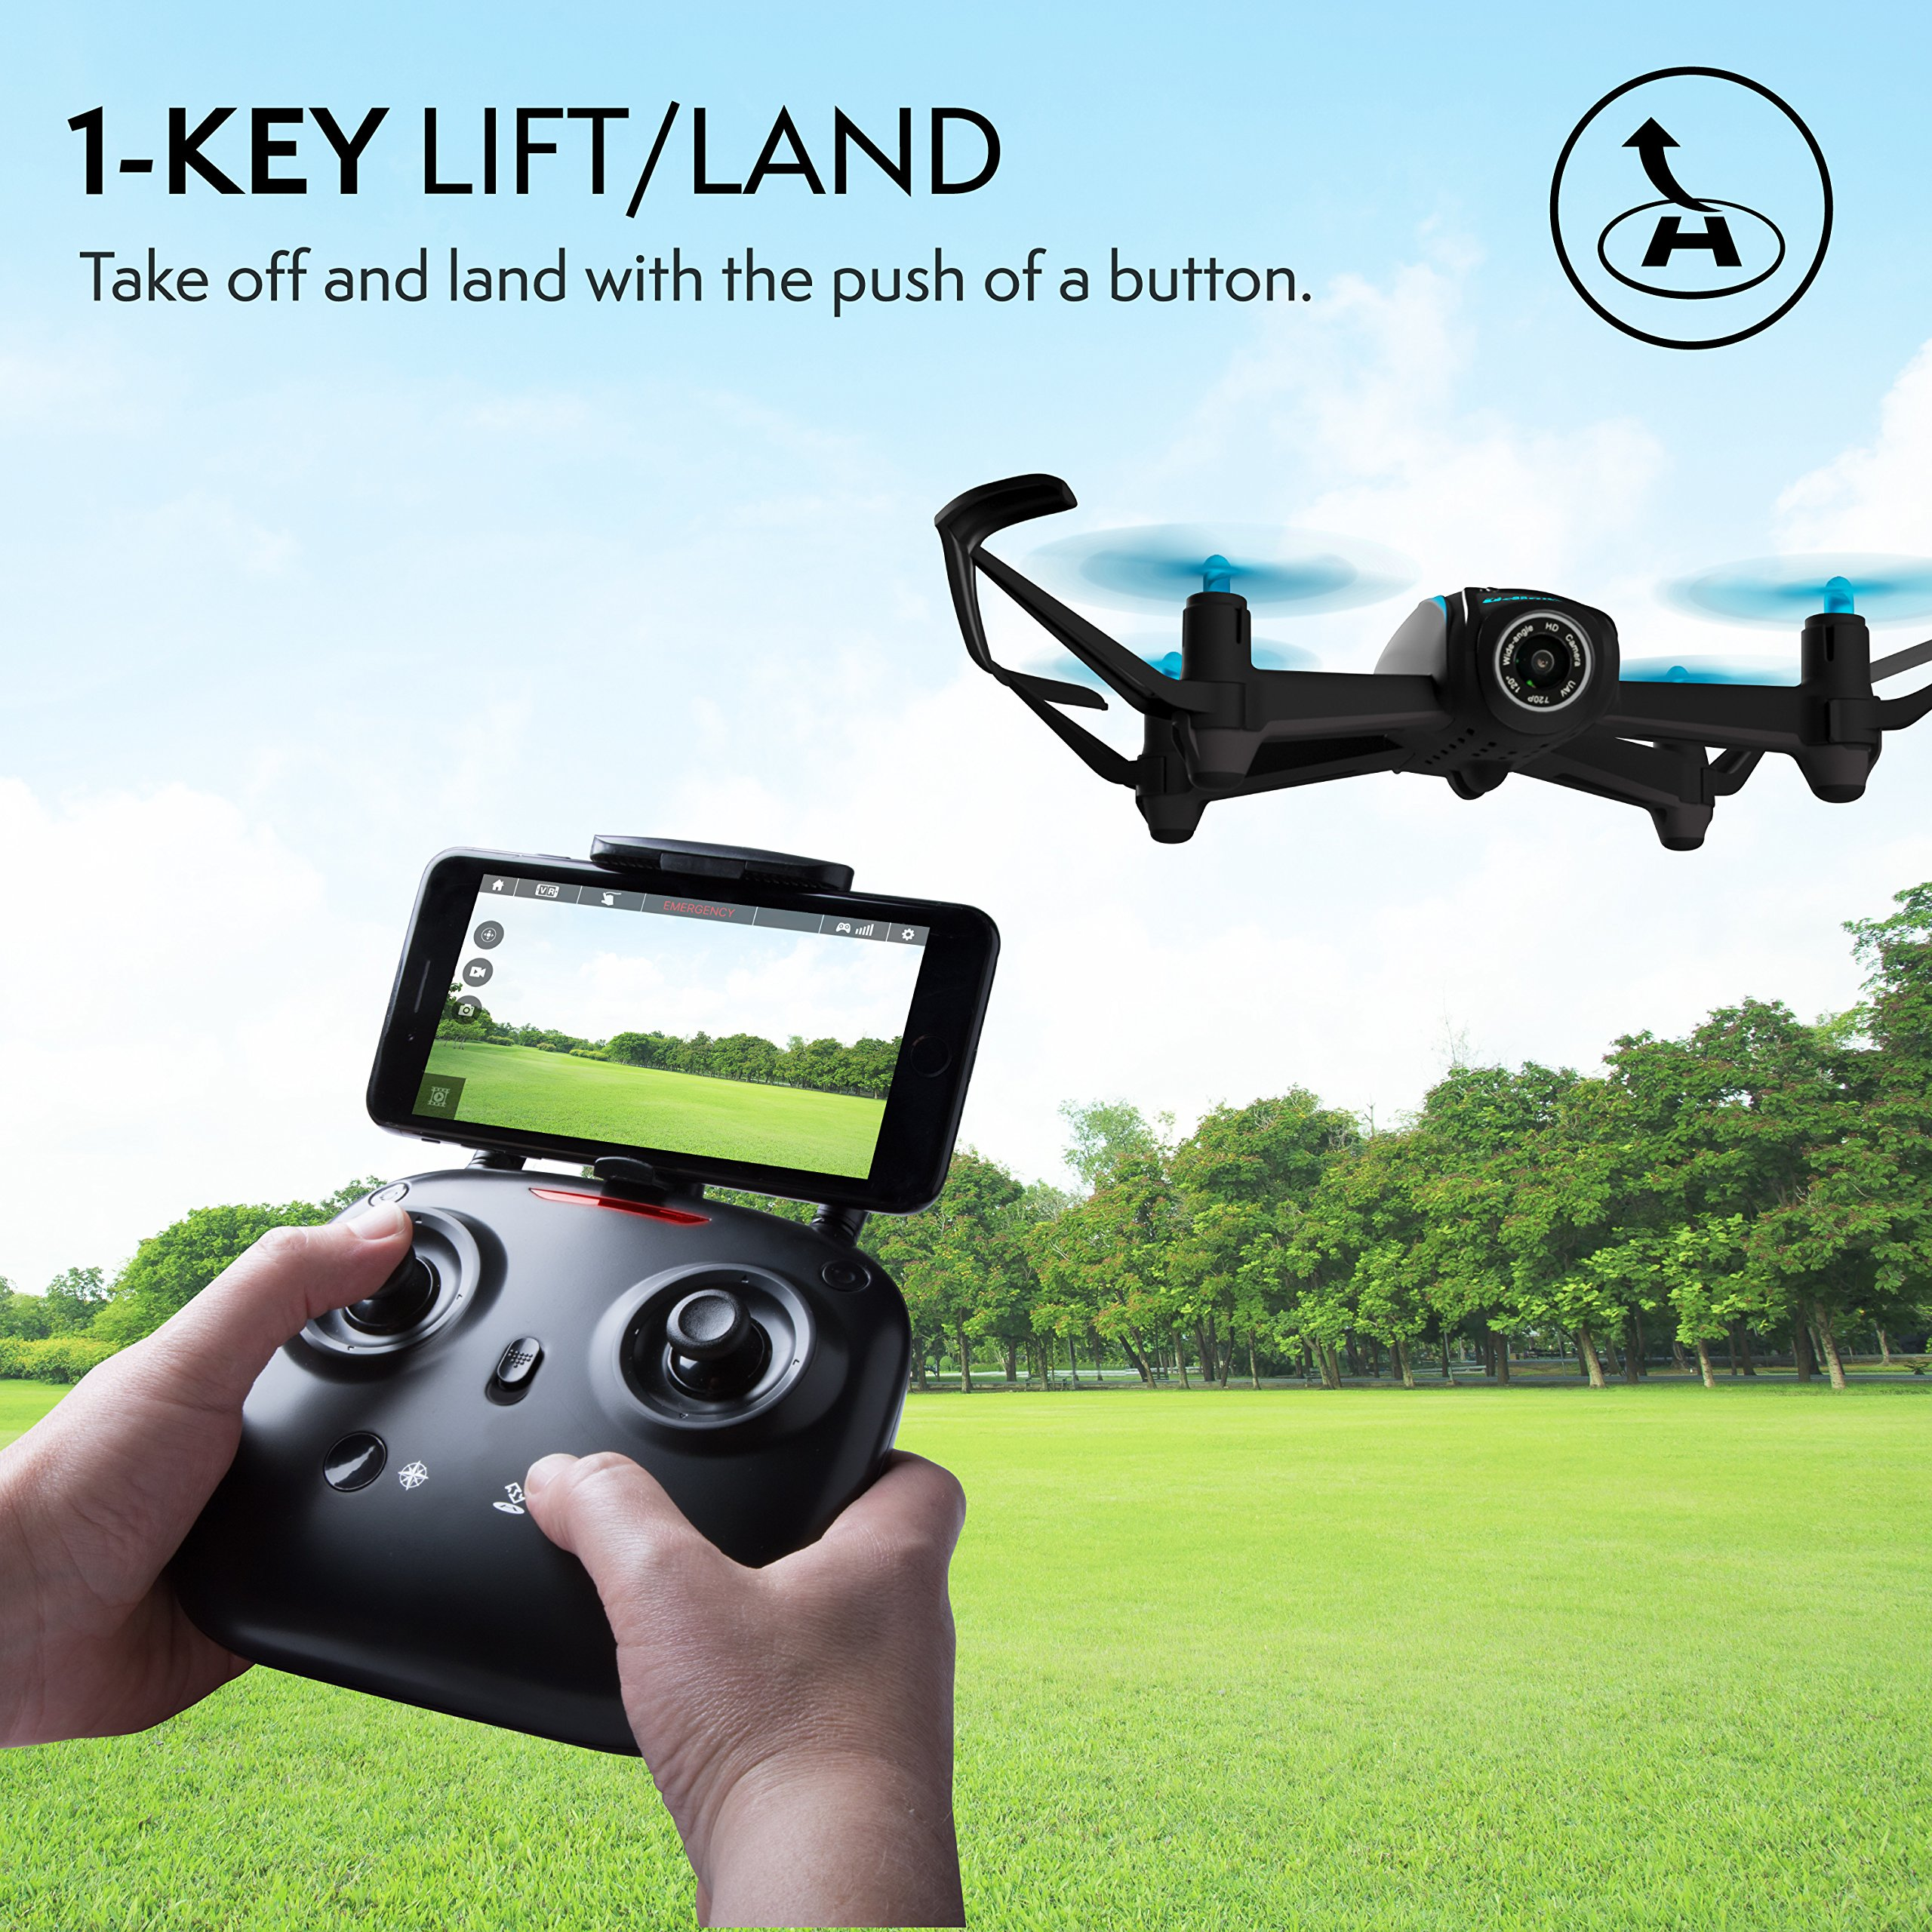 Force1 HD Drone with Camera – RC Camera Drones for Kids & Pros - U34W Dragonfly Drone with Camera Live Video, Altitude Hold & Wi-Fi FPV - Easy to Fly Quadcopter Drones for Beginners by Force1 (Image #4)